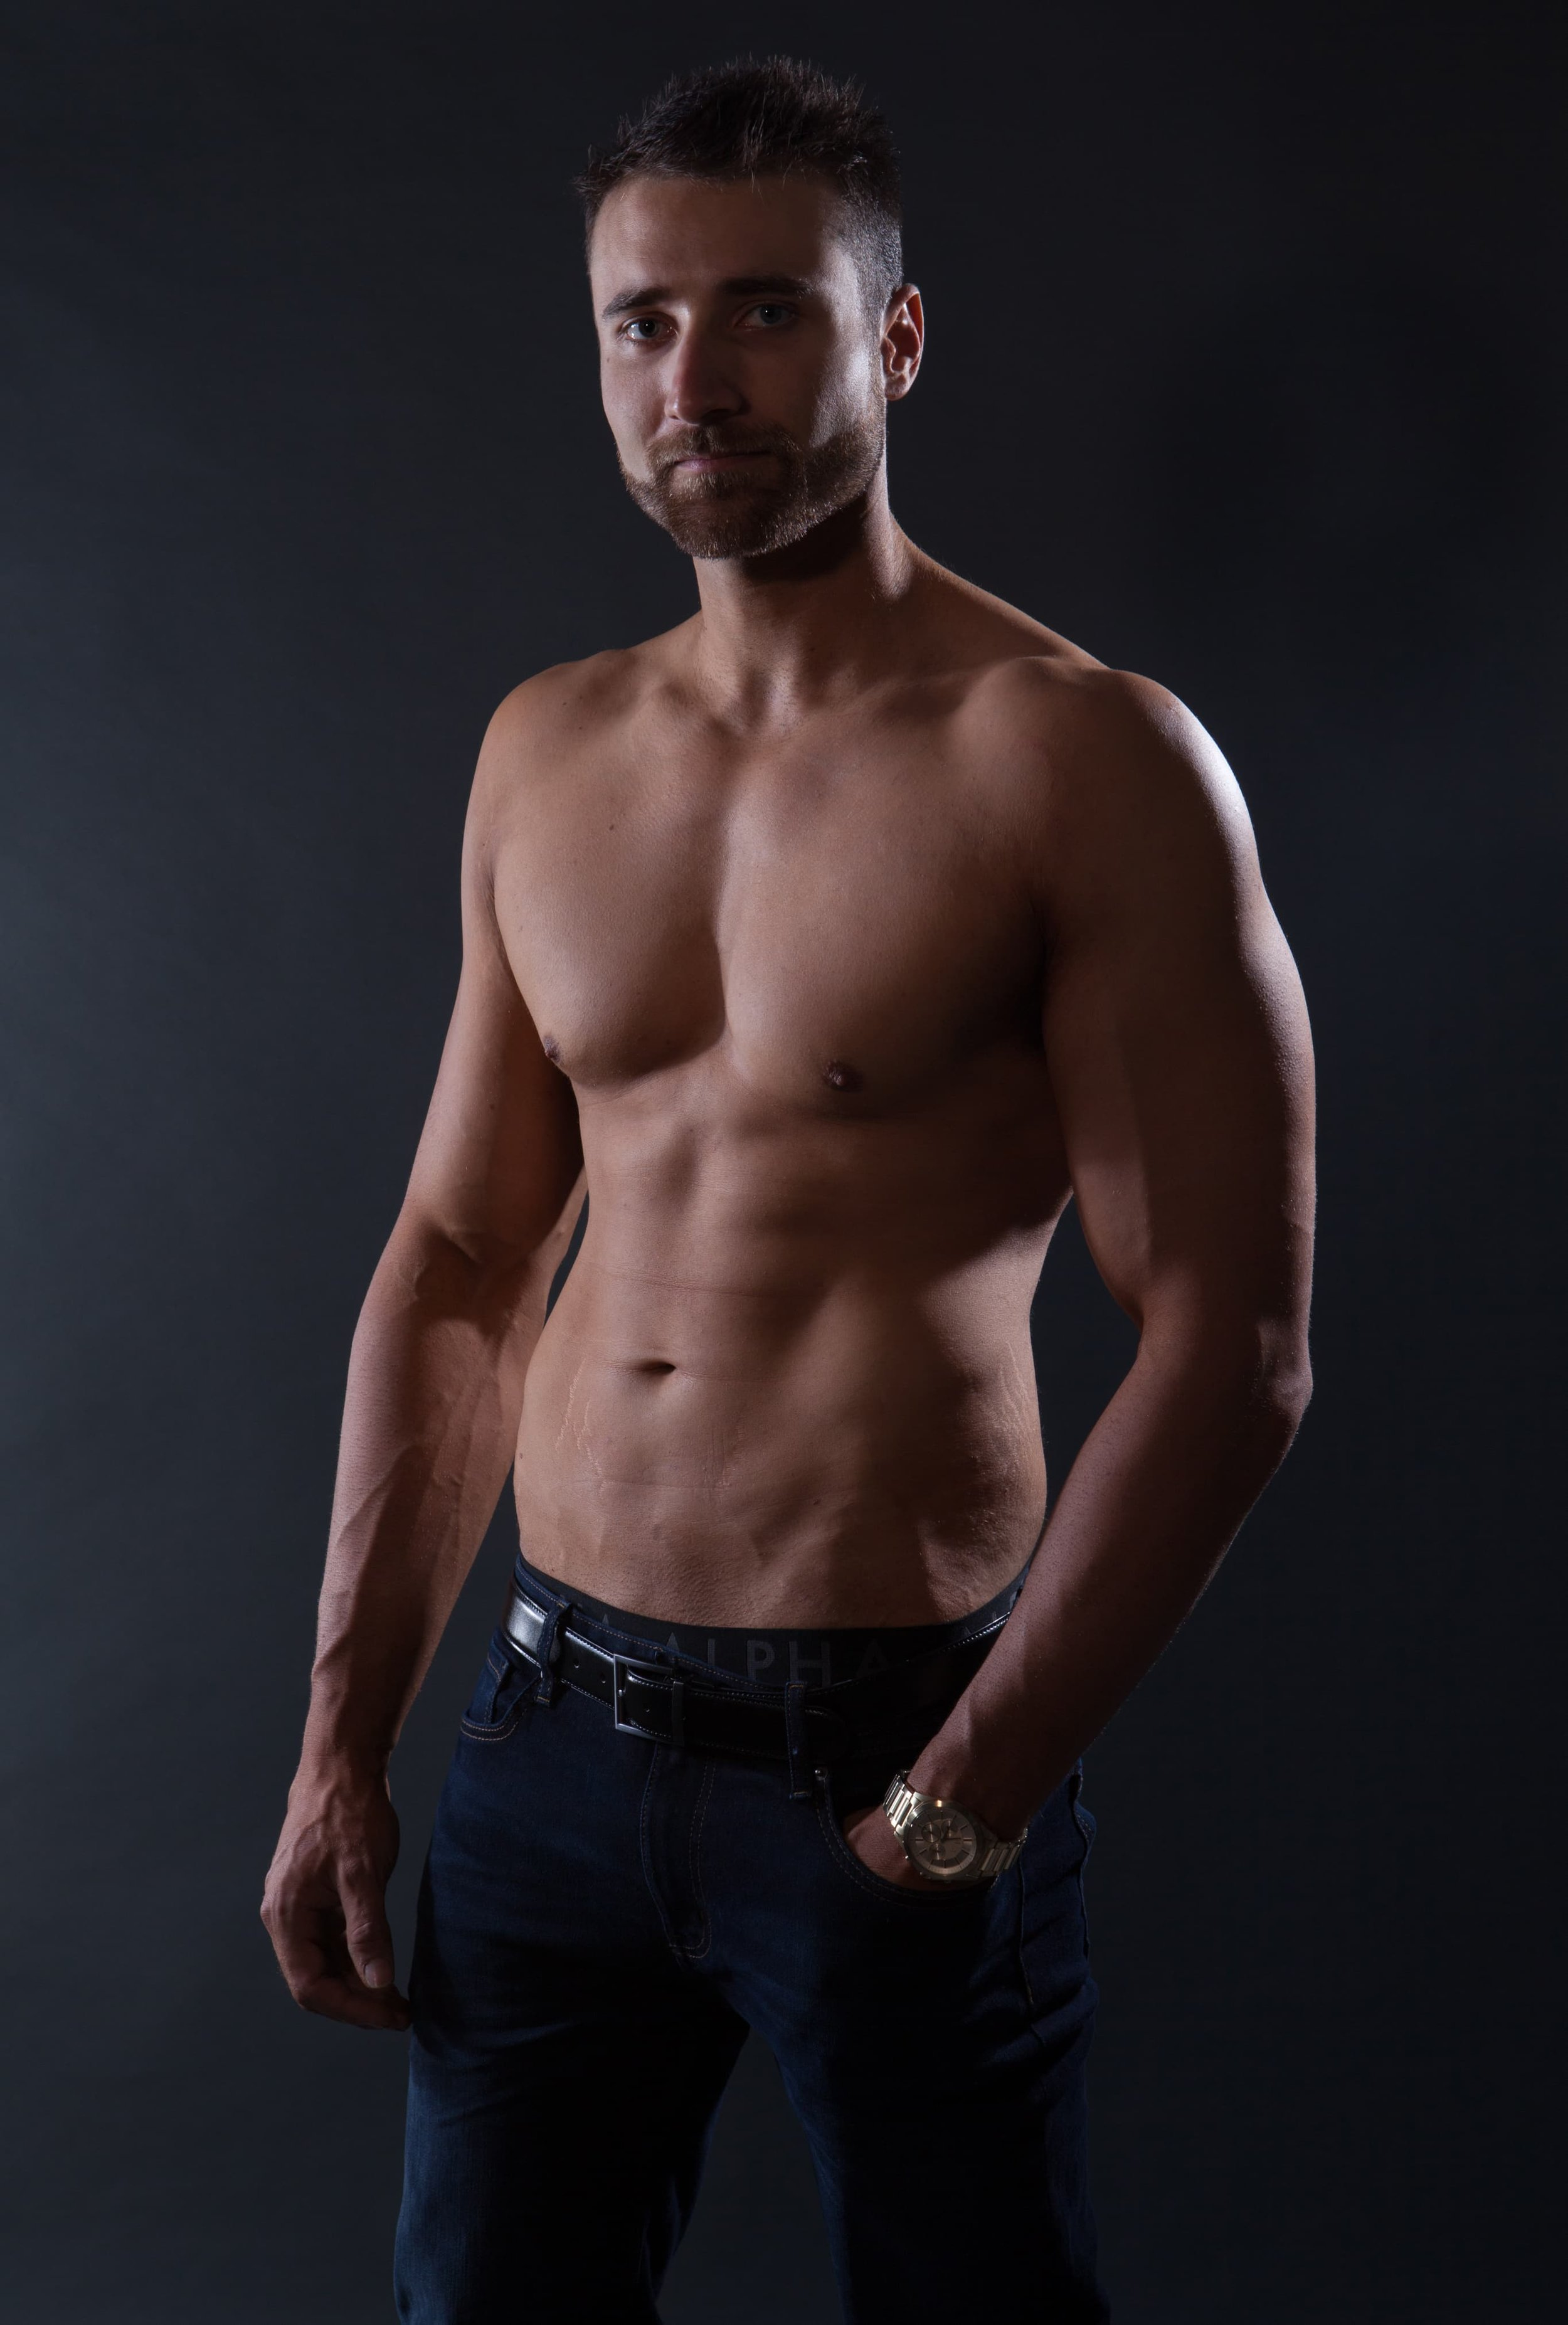 TOpless kiwi waiter based in the gold coaat for hire, hens nights and hens party bookings.